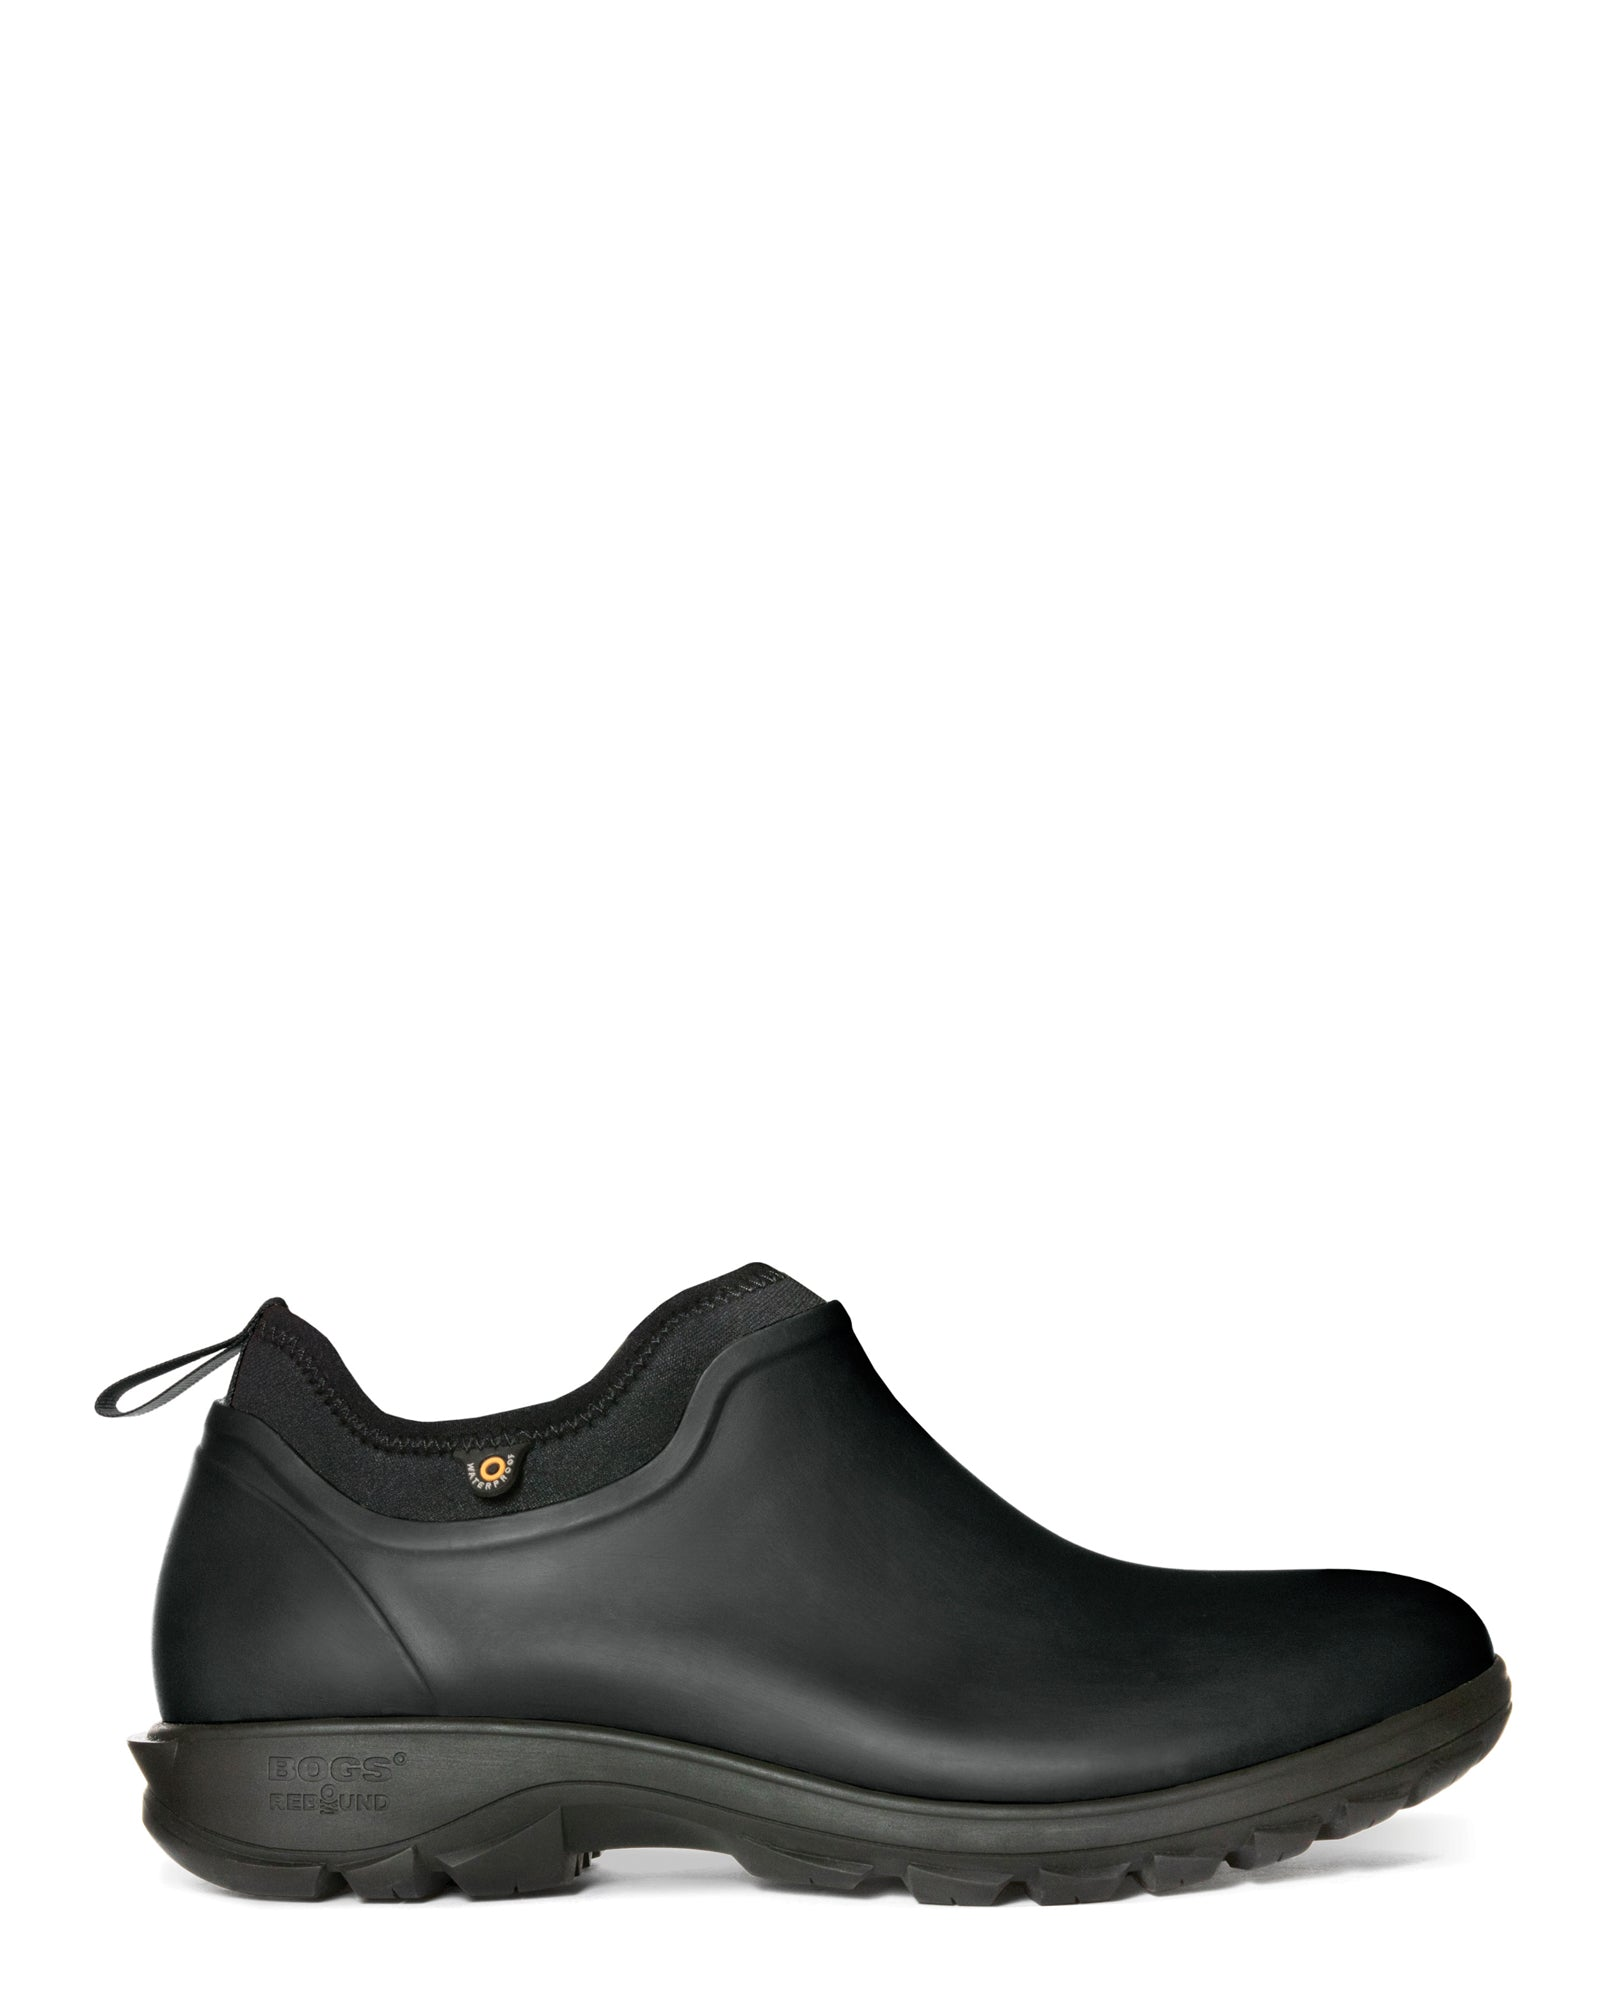 Bogs Men/'s Sauvie Slip On Black